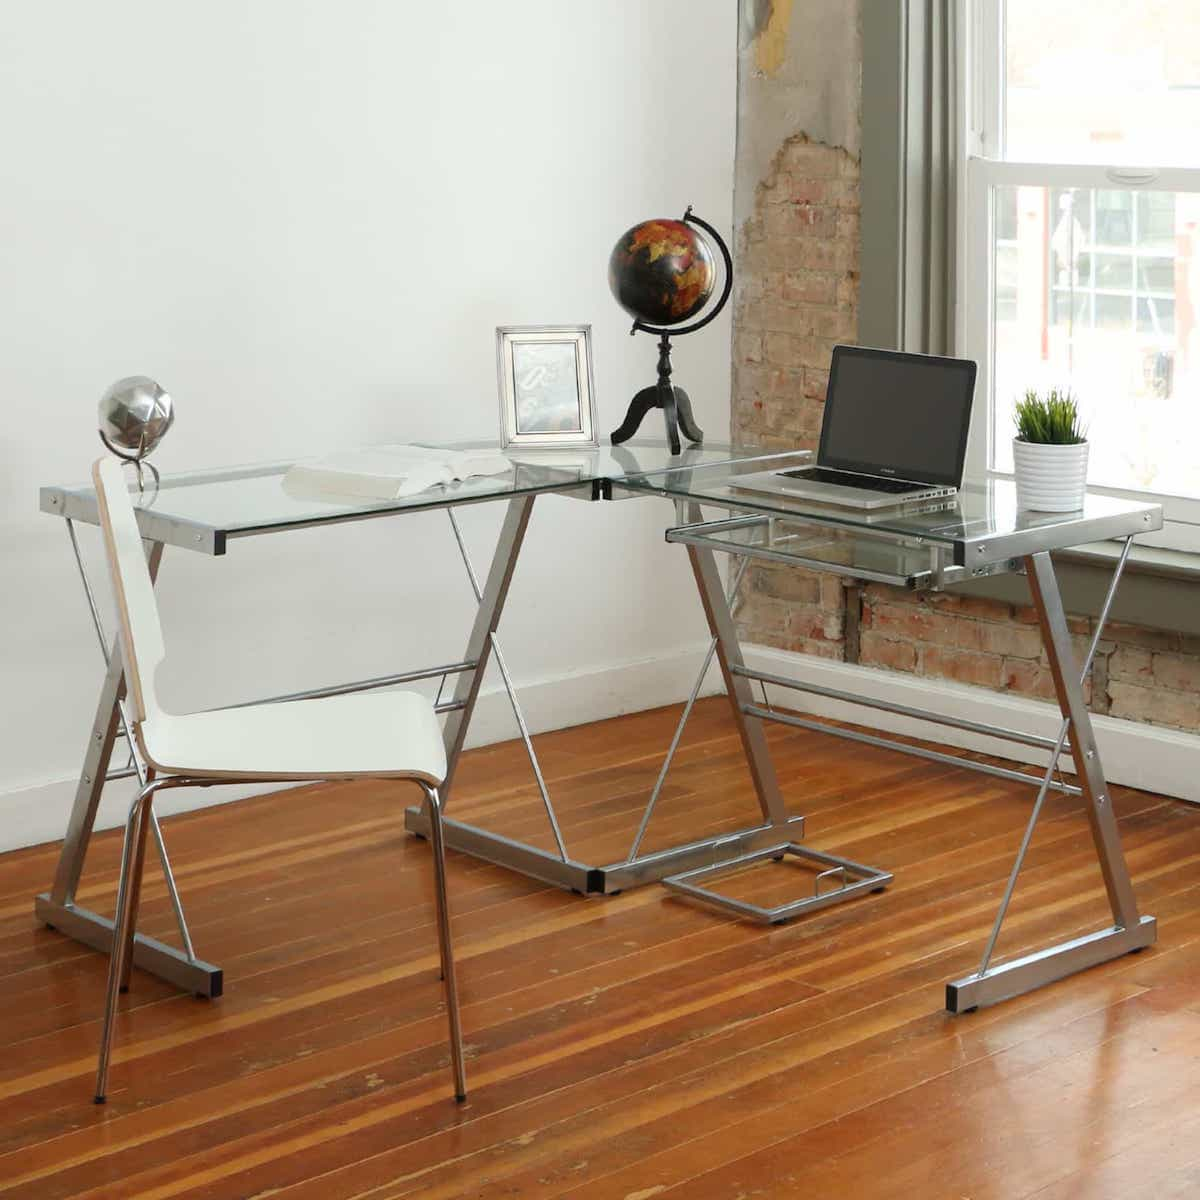 Portable Glass And Metal Corner Computer Desk For Apartment Home Office (Image 6 of 8)